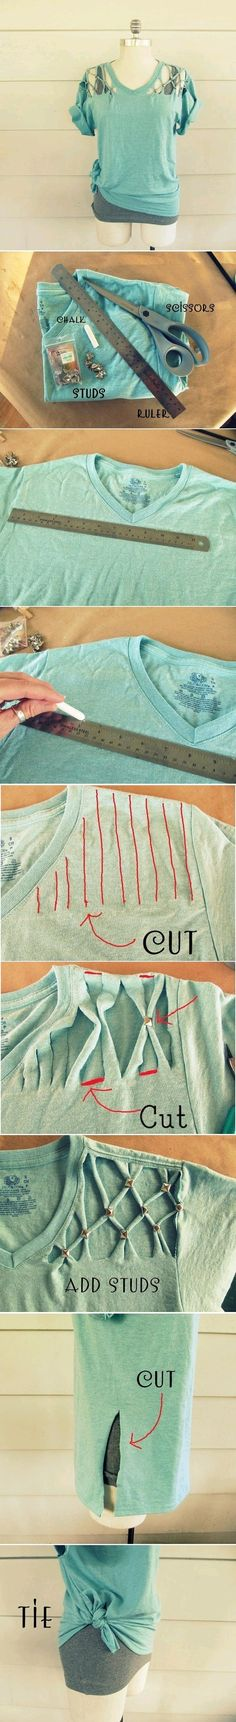 DIY Shirt diy crafts craft ideas easy crafts diy ideas diy crafts diy clothes easy diy fun diy diy shirt craft clothes craft fashion craft shirt fashion house design interior house design room design decorating before and after